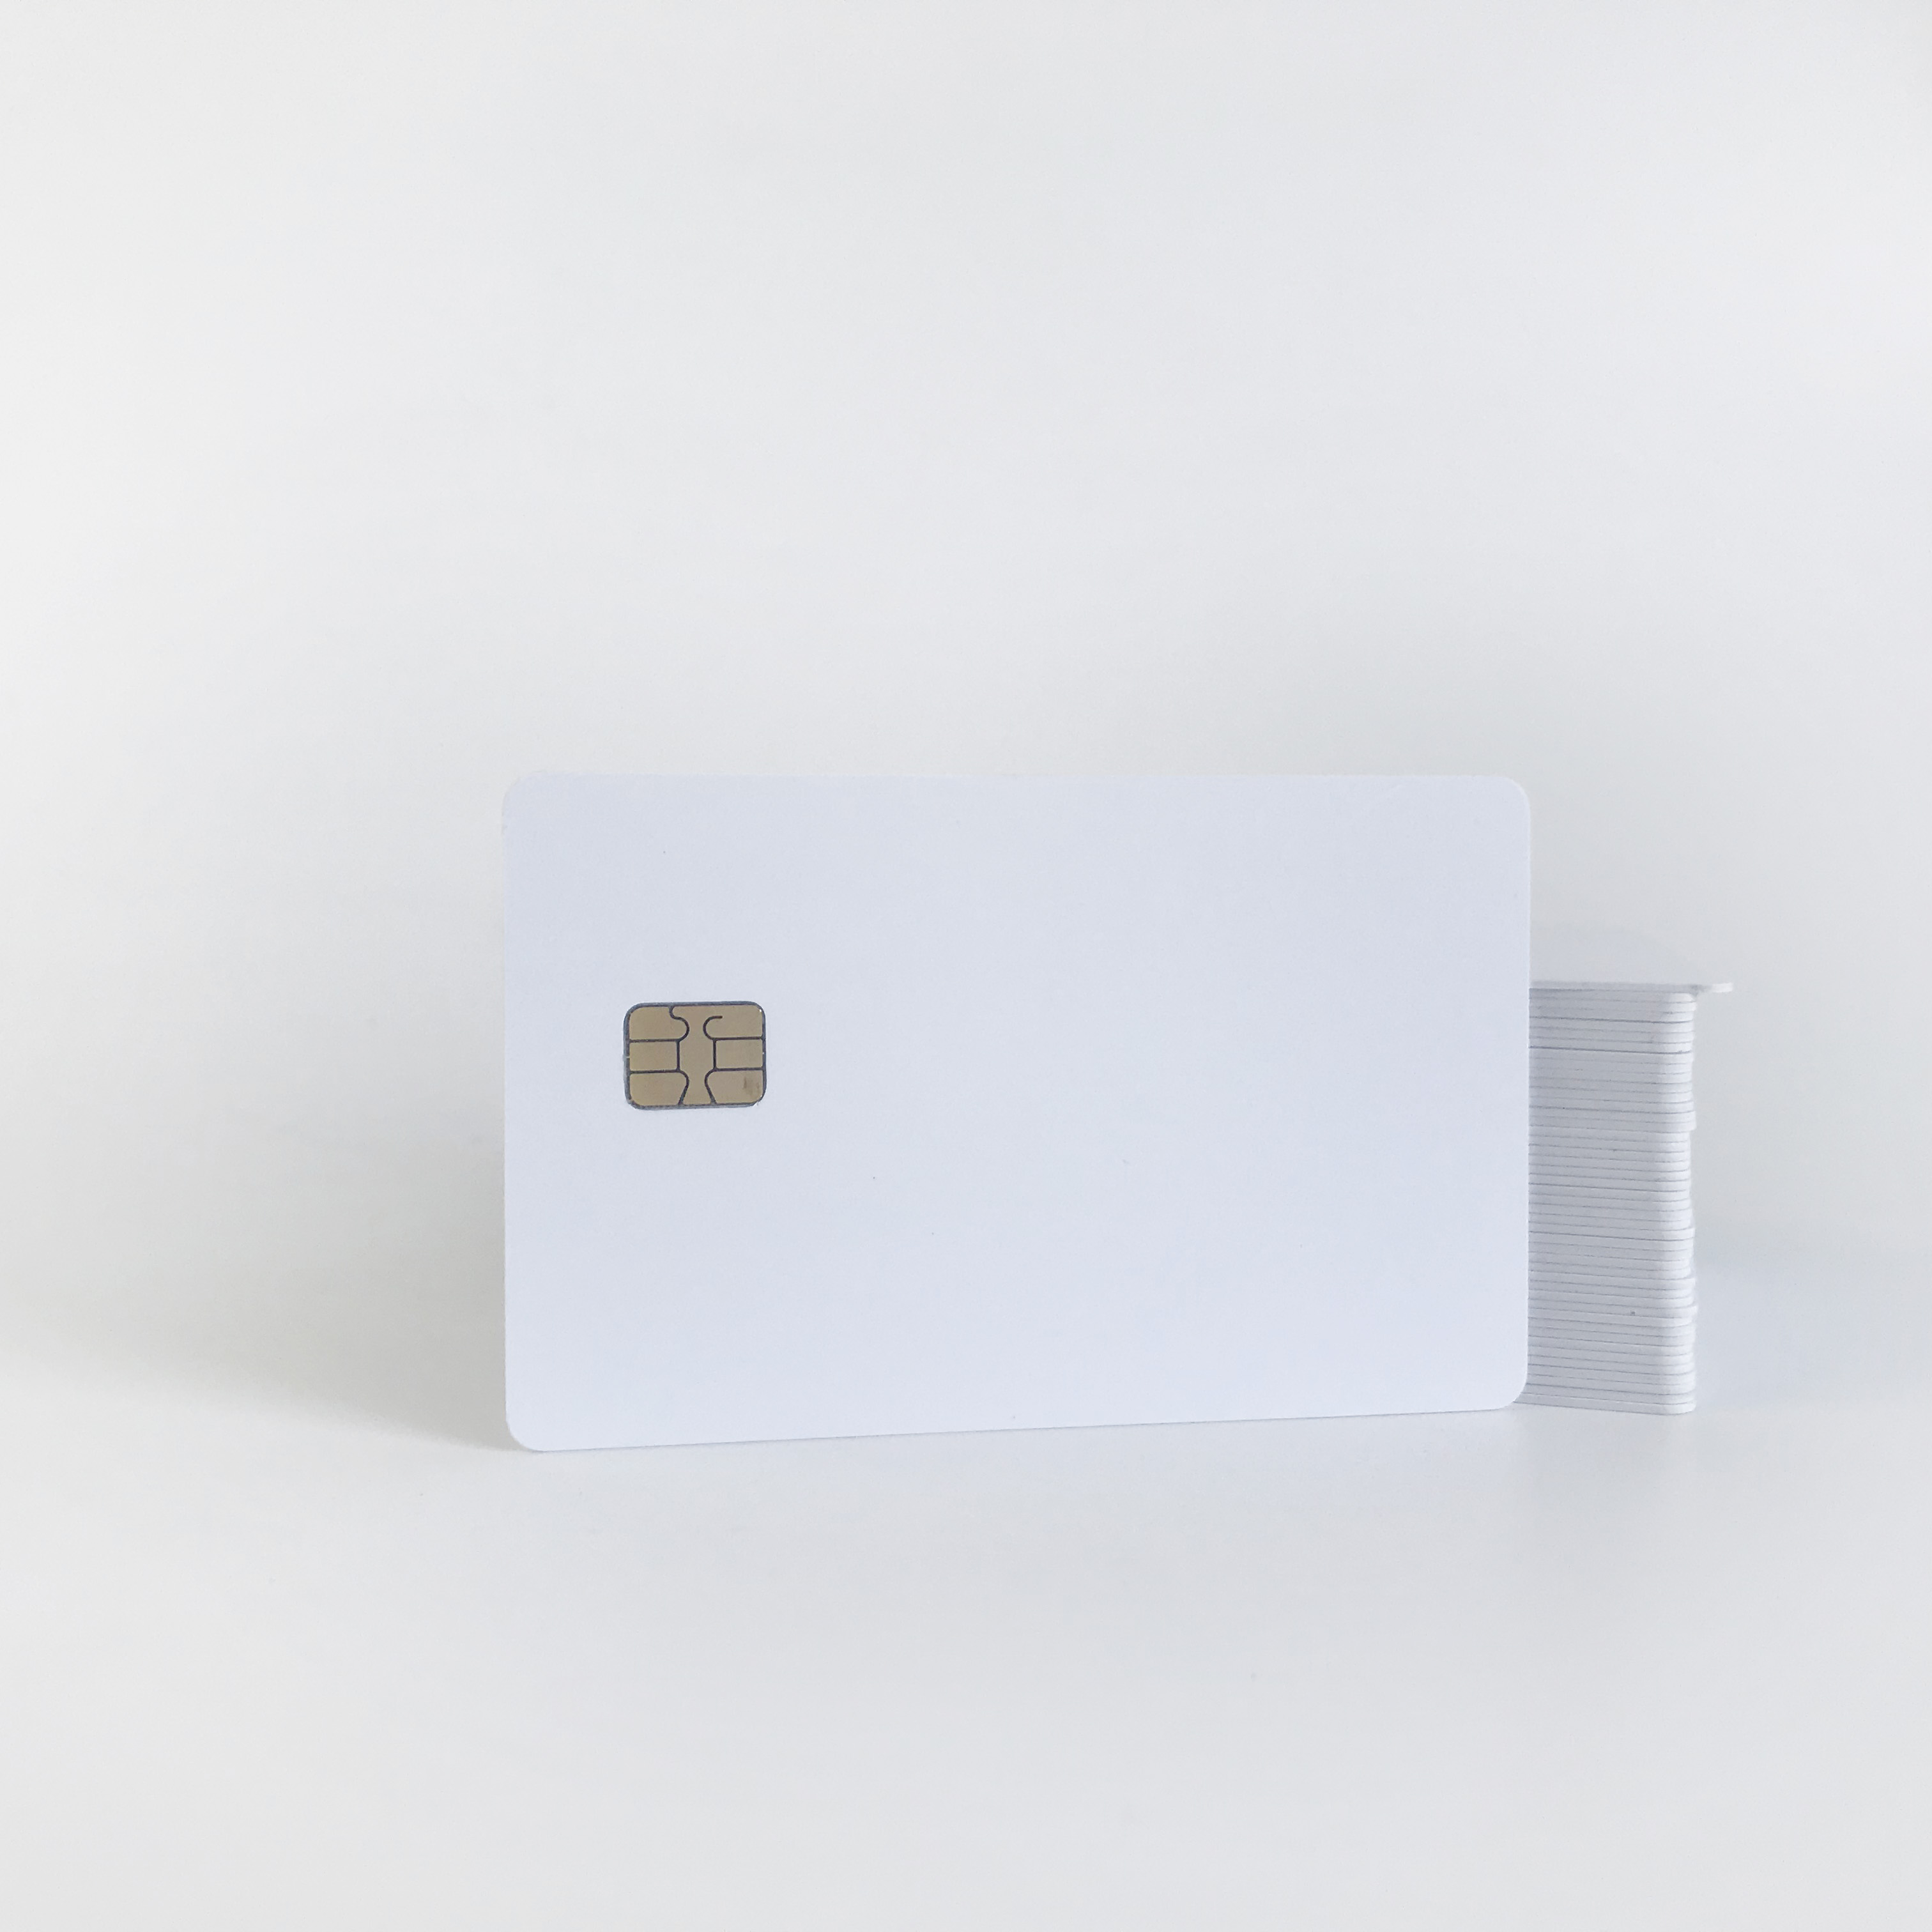 100pcs 4442 Contact Smart Chip Card with Both Side Printed Printing by Epson or Canon Printers for Membership Card Access Card